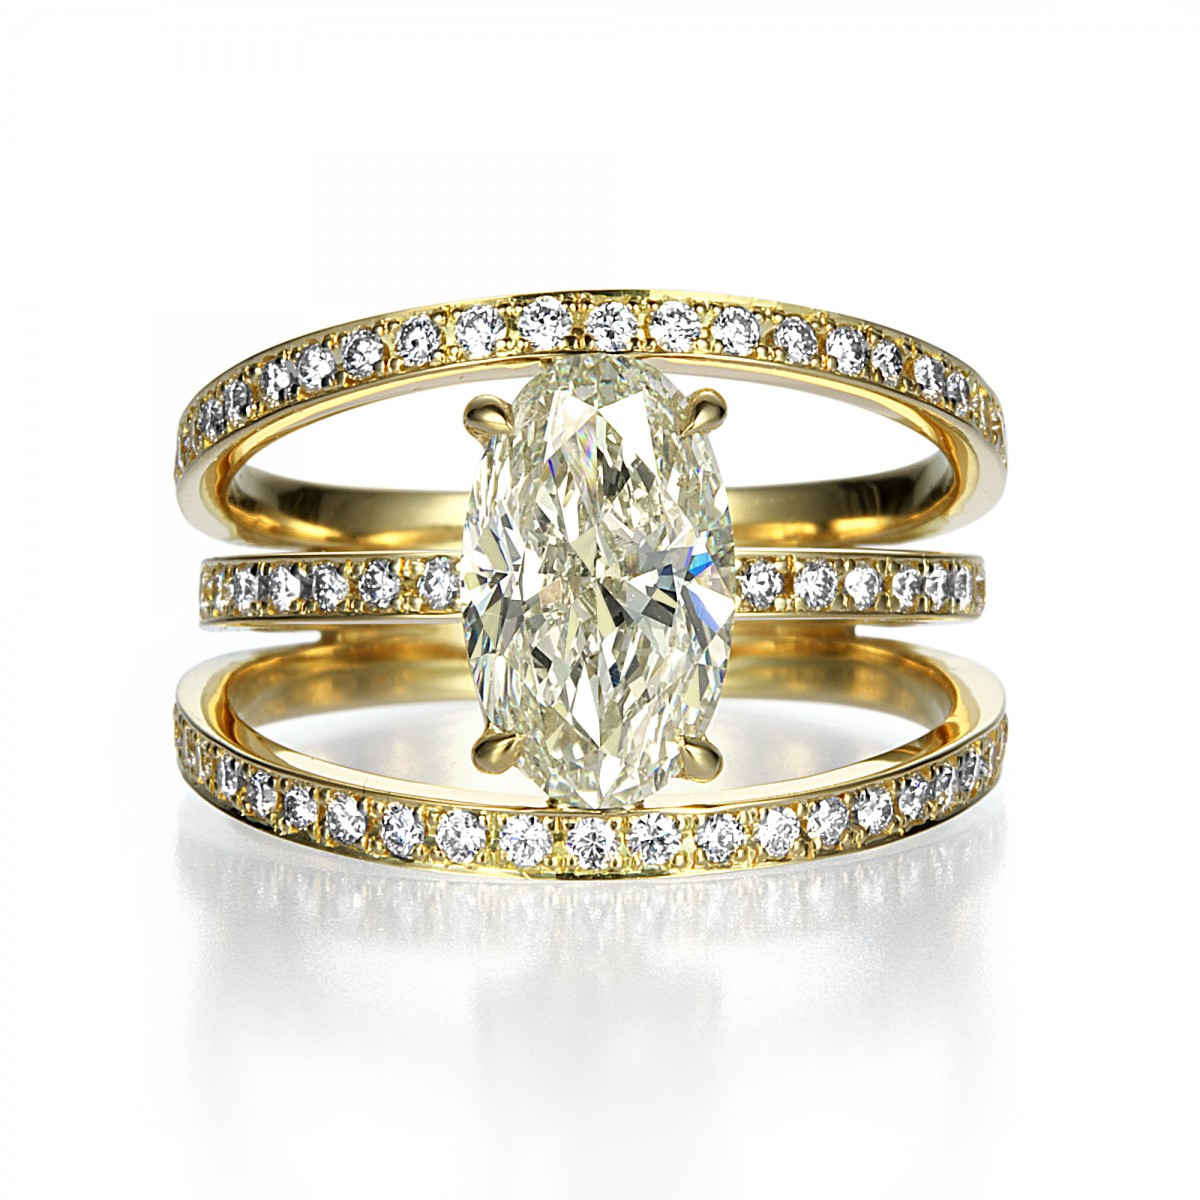 2 Carat Oval Shape Diamond Ring in K18 Yellow Gold By Mark Hiroshi Willis マークヒロシウィリス